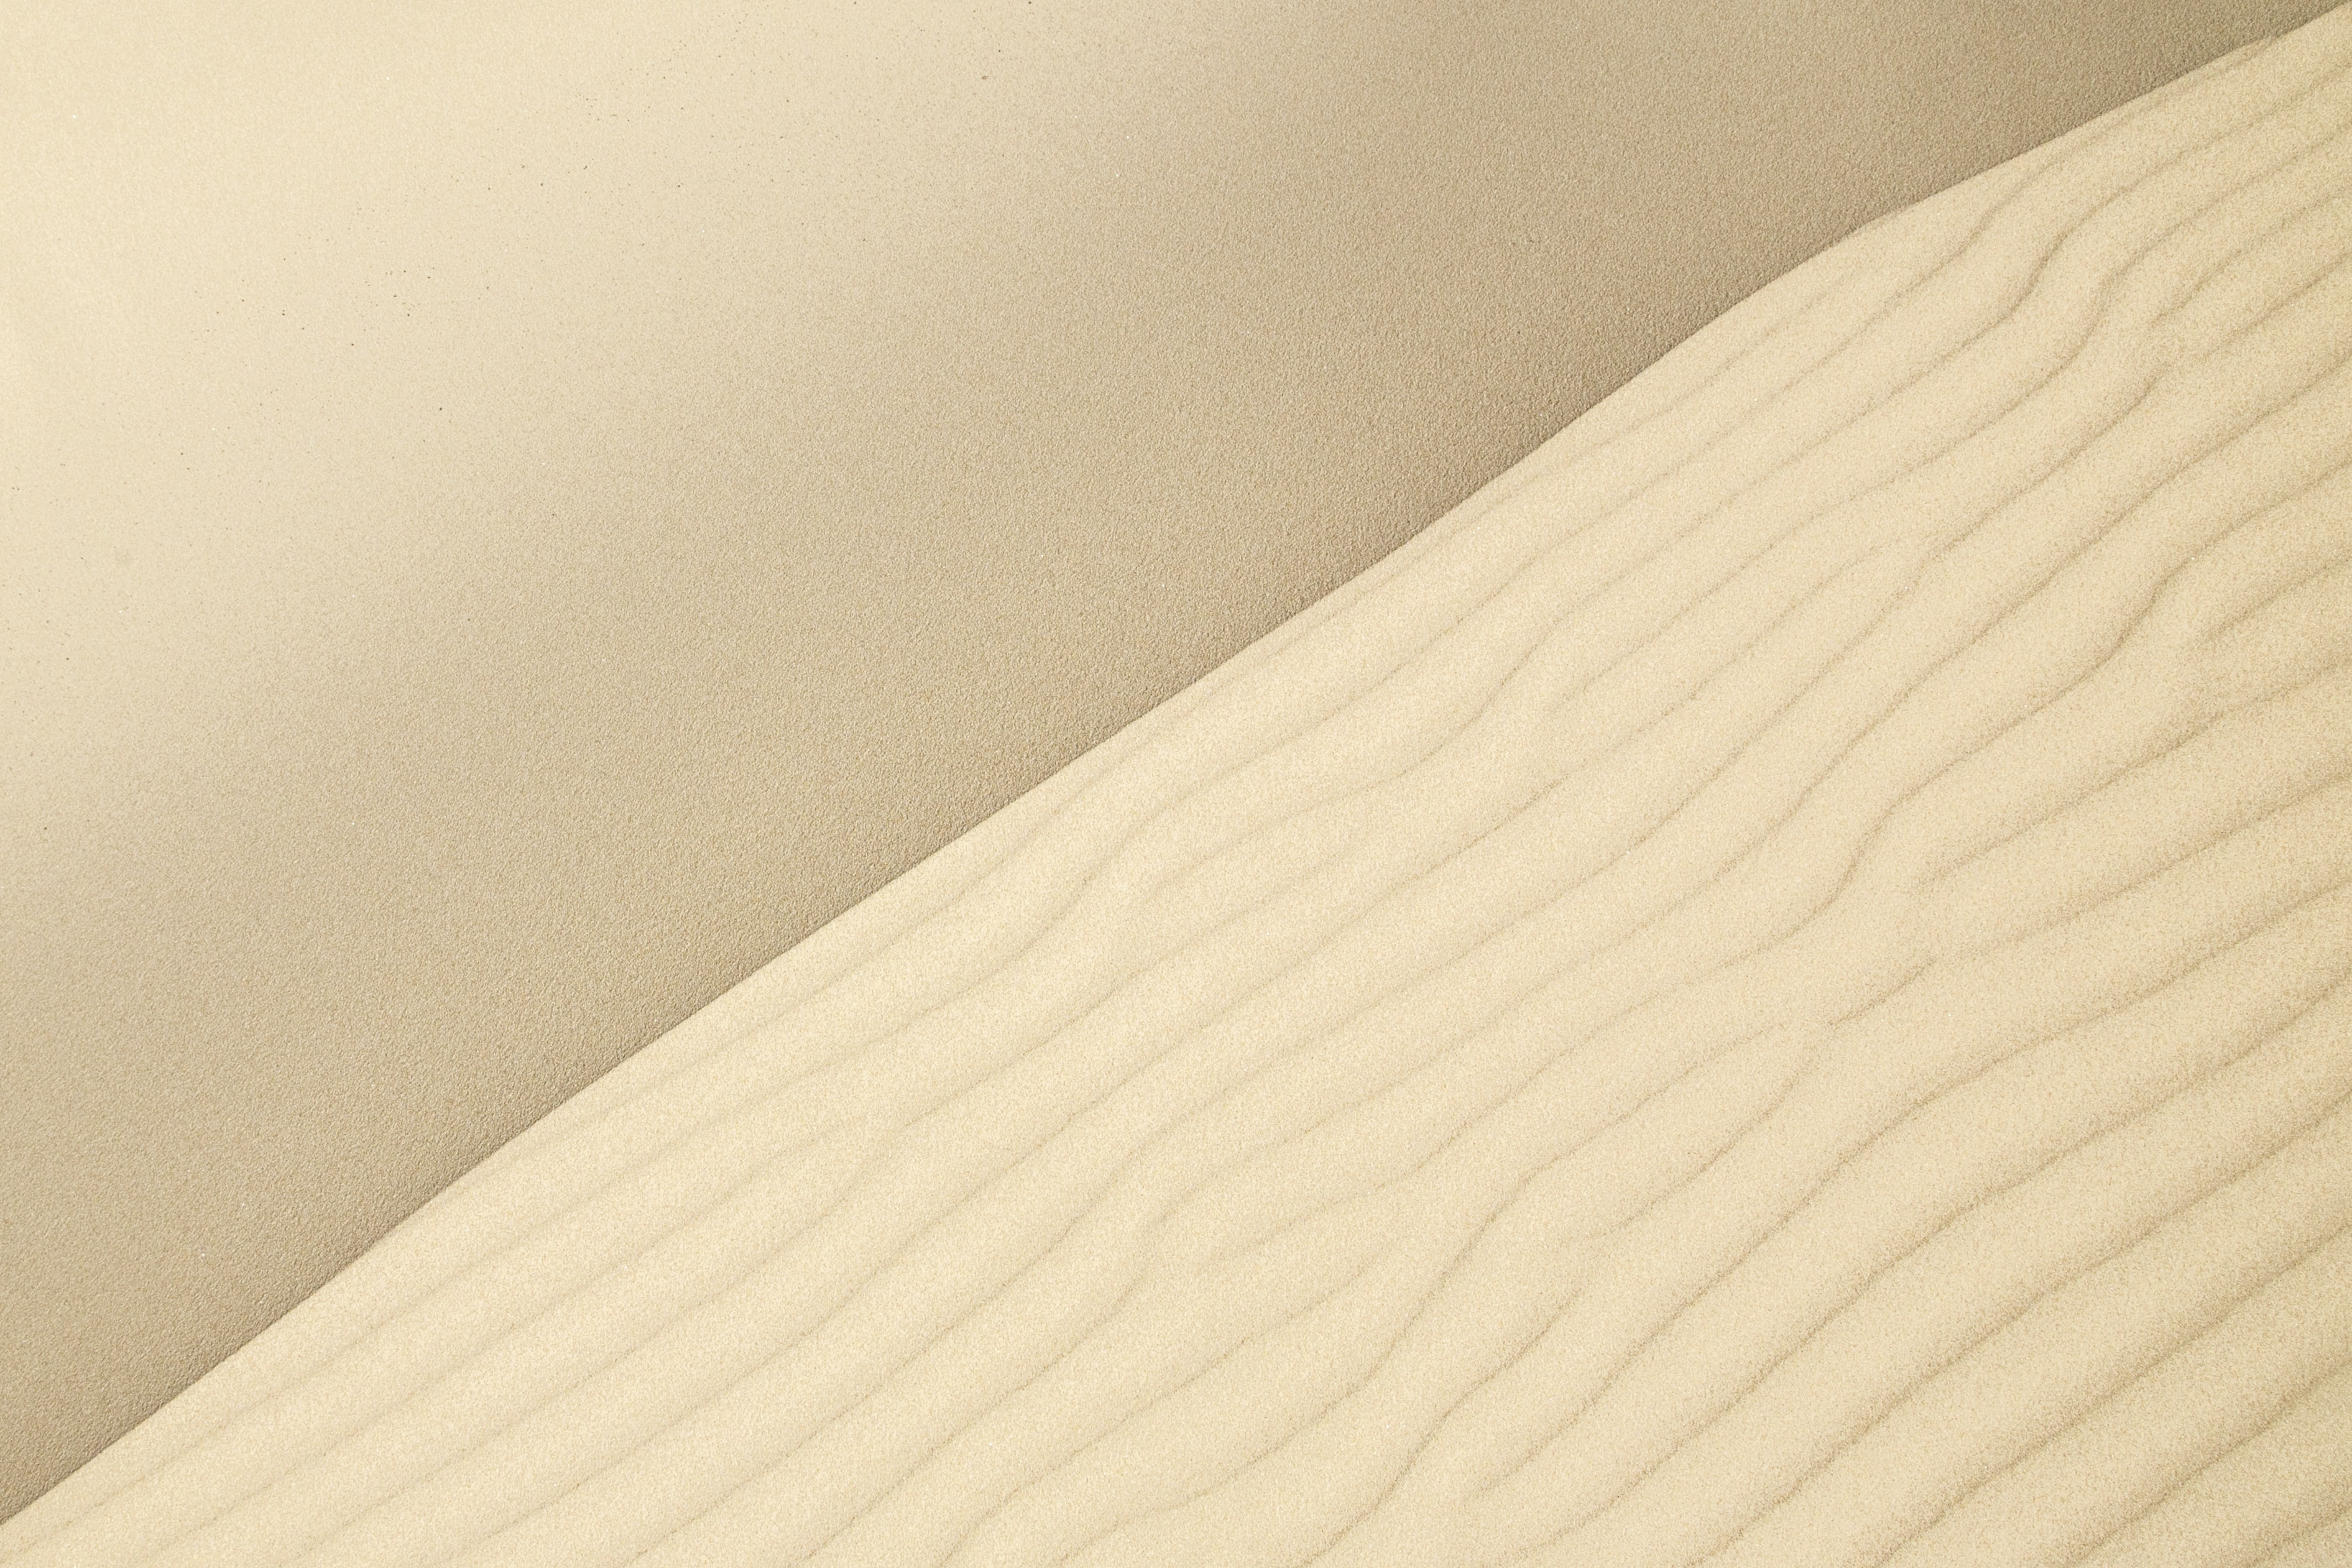 Ripples in the dry sands of a white air desert